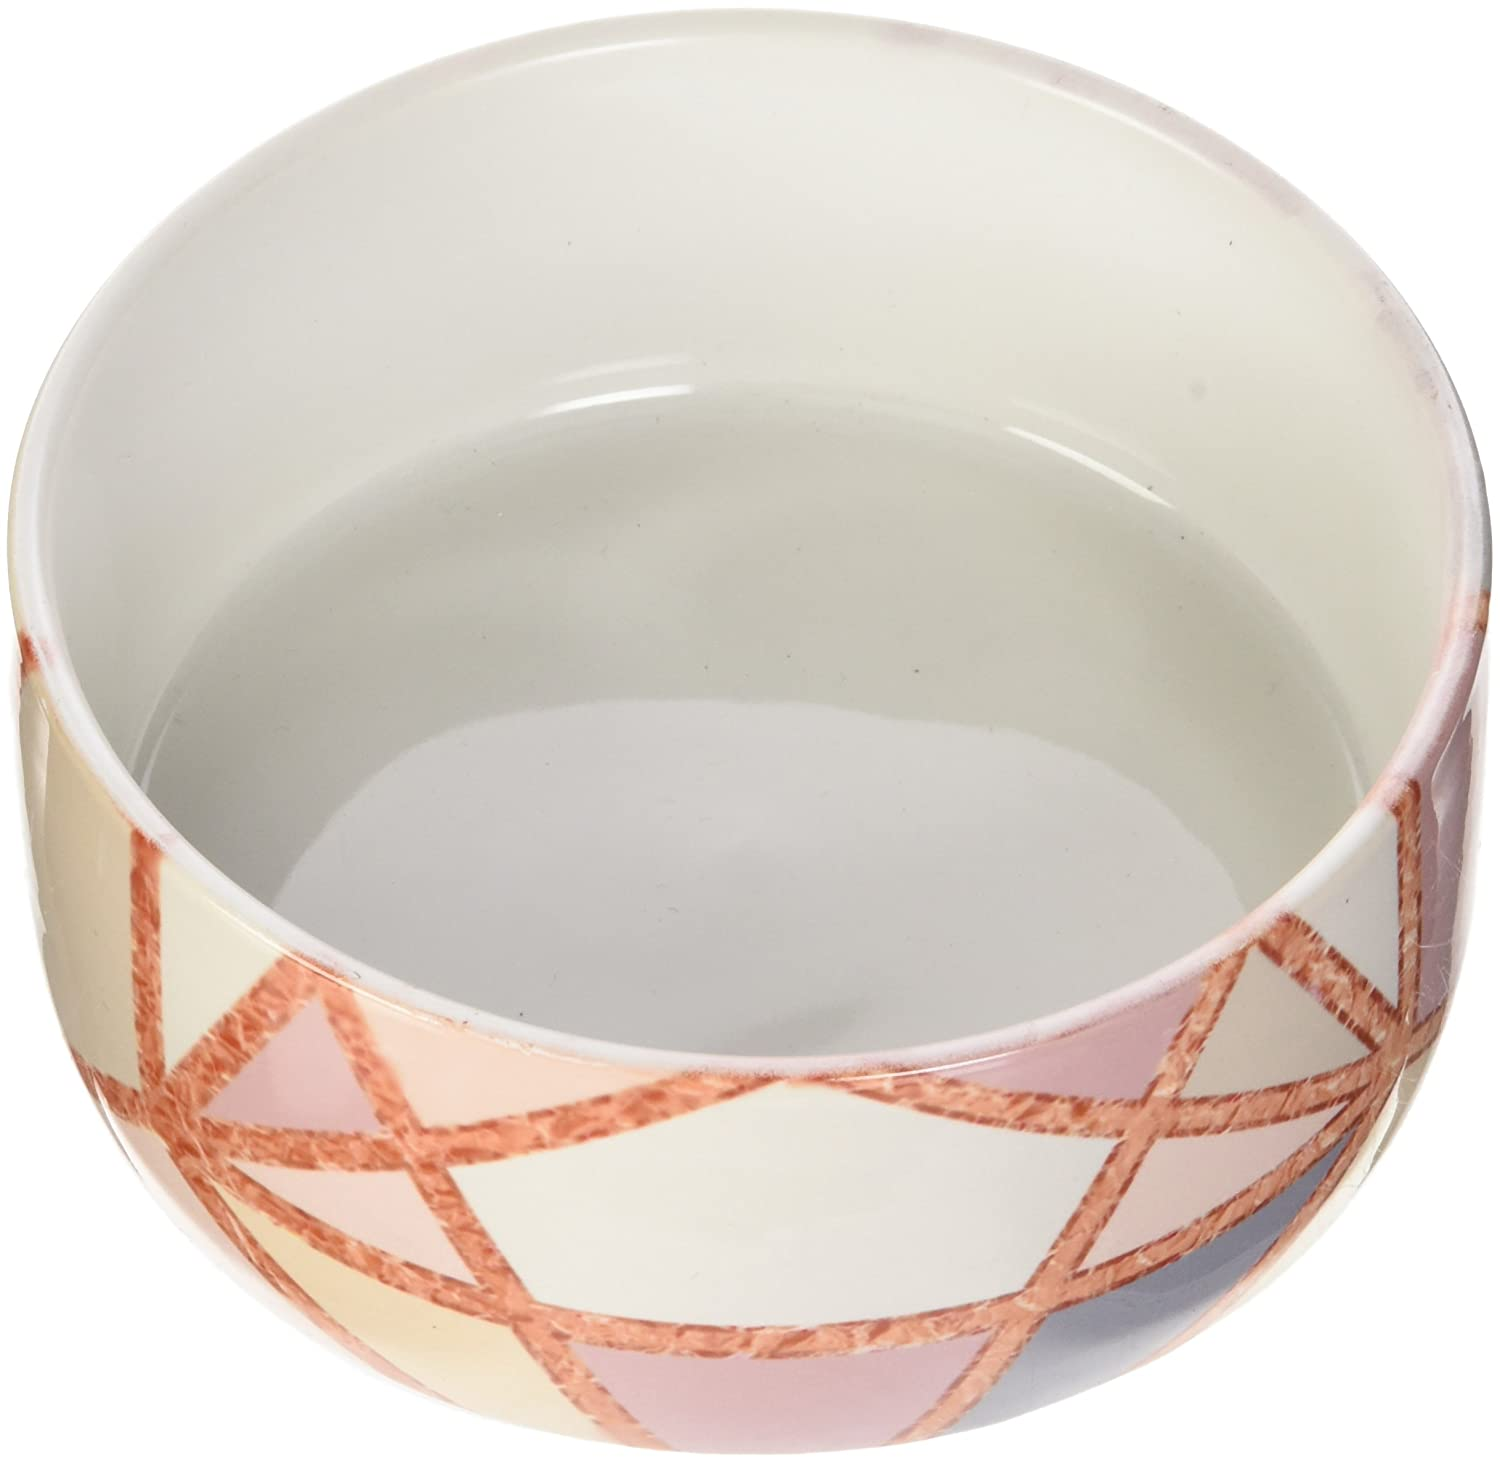 KESS InHouse Draper pink gold Geometry gold Pastel Digital Pet Bowl, 4.75  Diameter